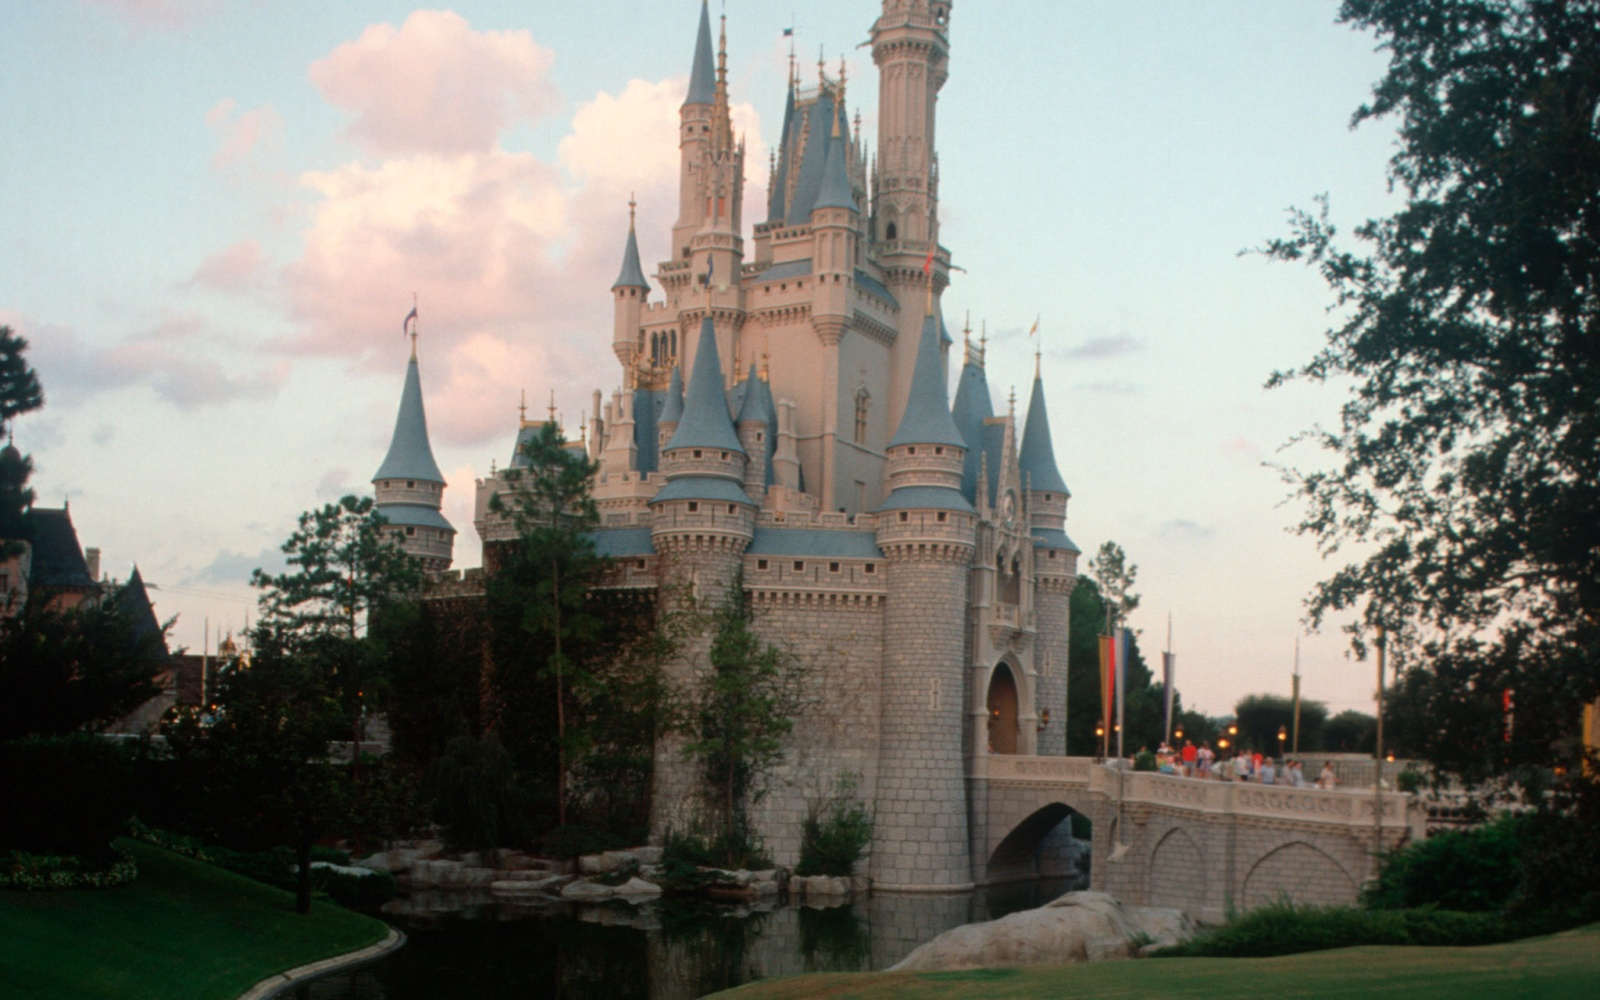 Magic Kingdom at Walt Disney World, Buena Vista, Florida